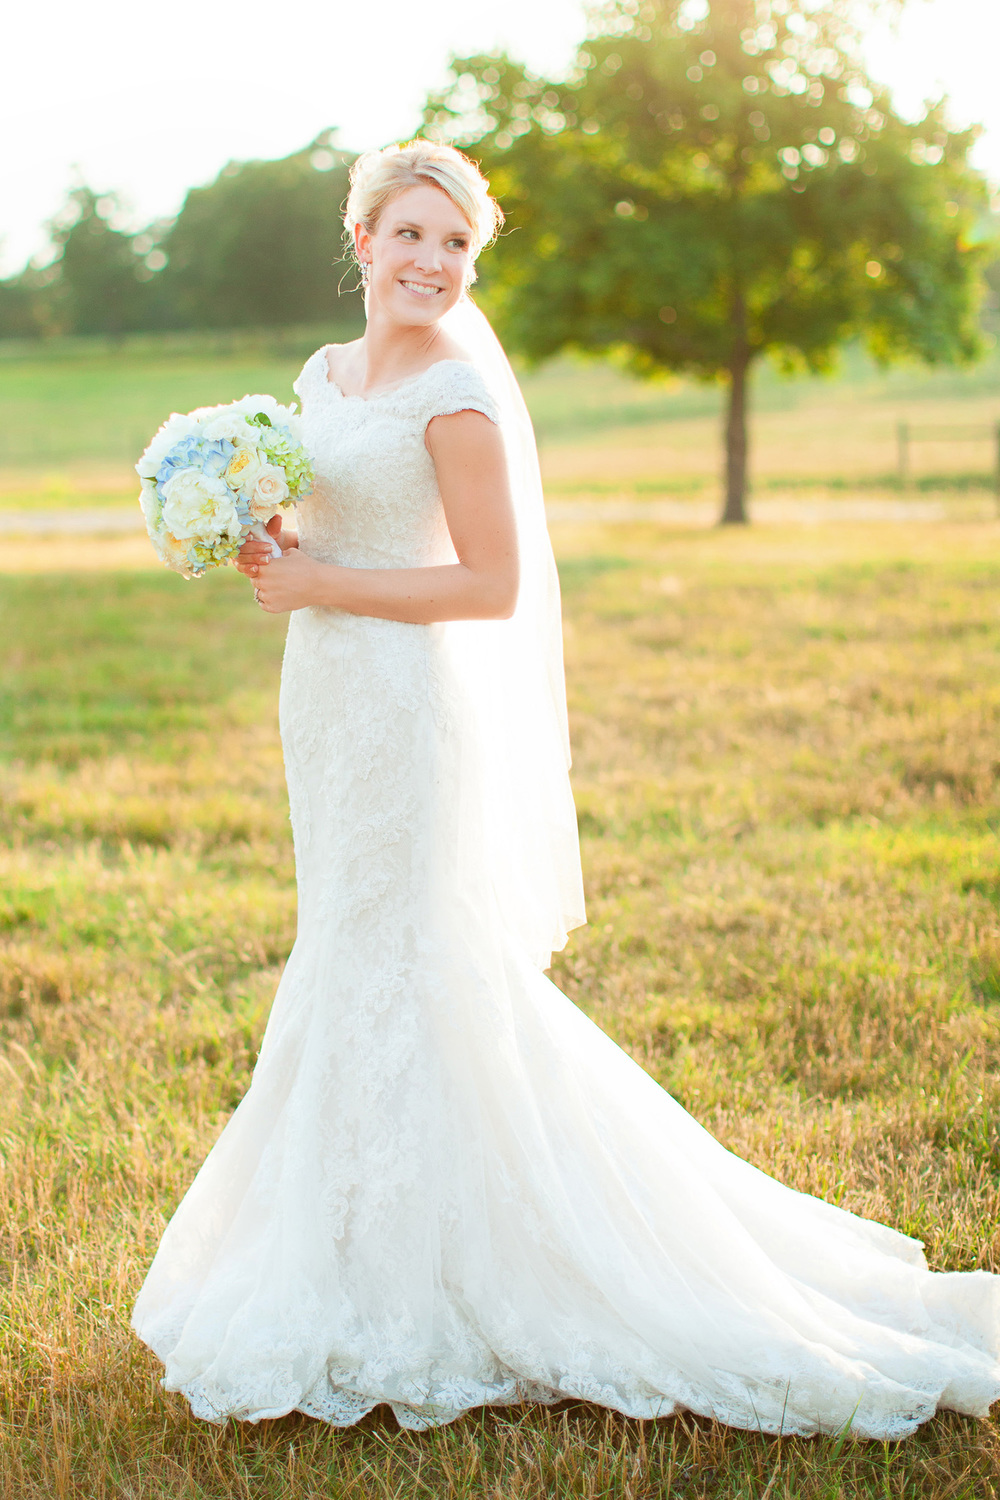 Bride at Elodie Farms